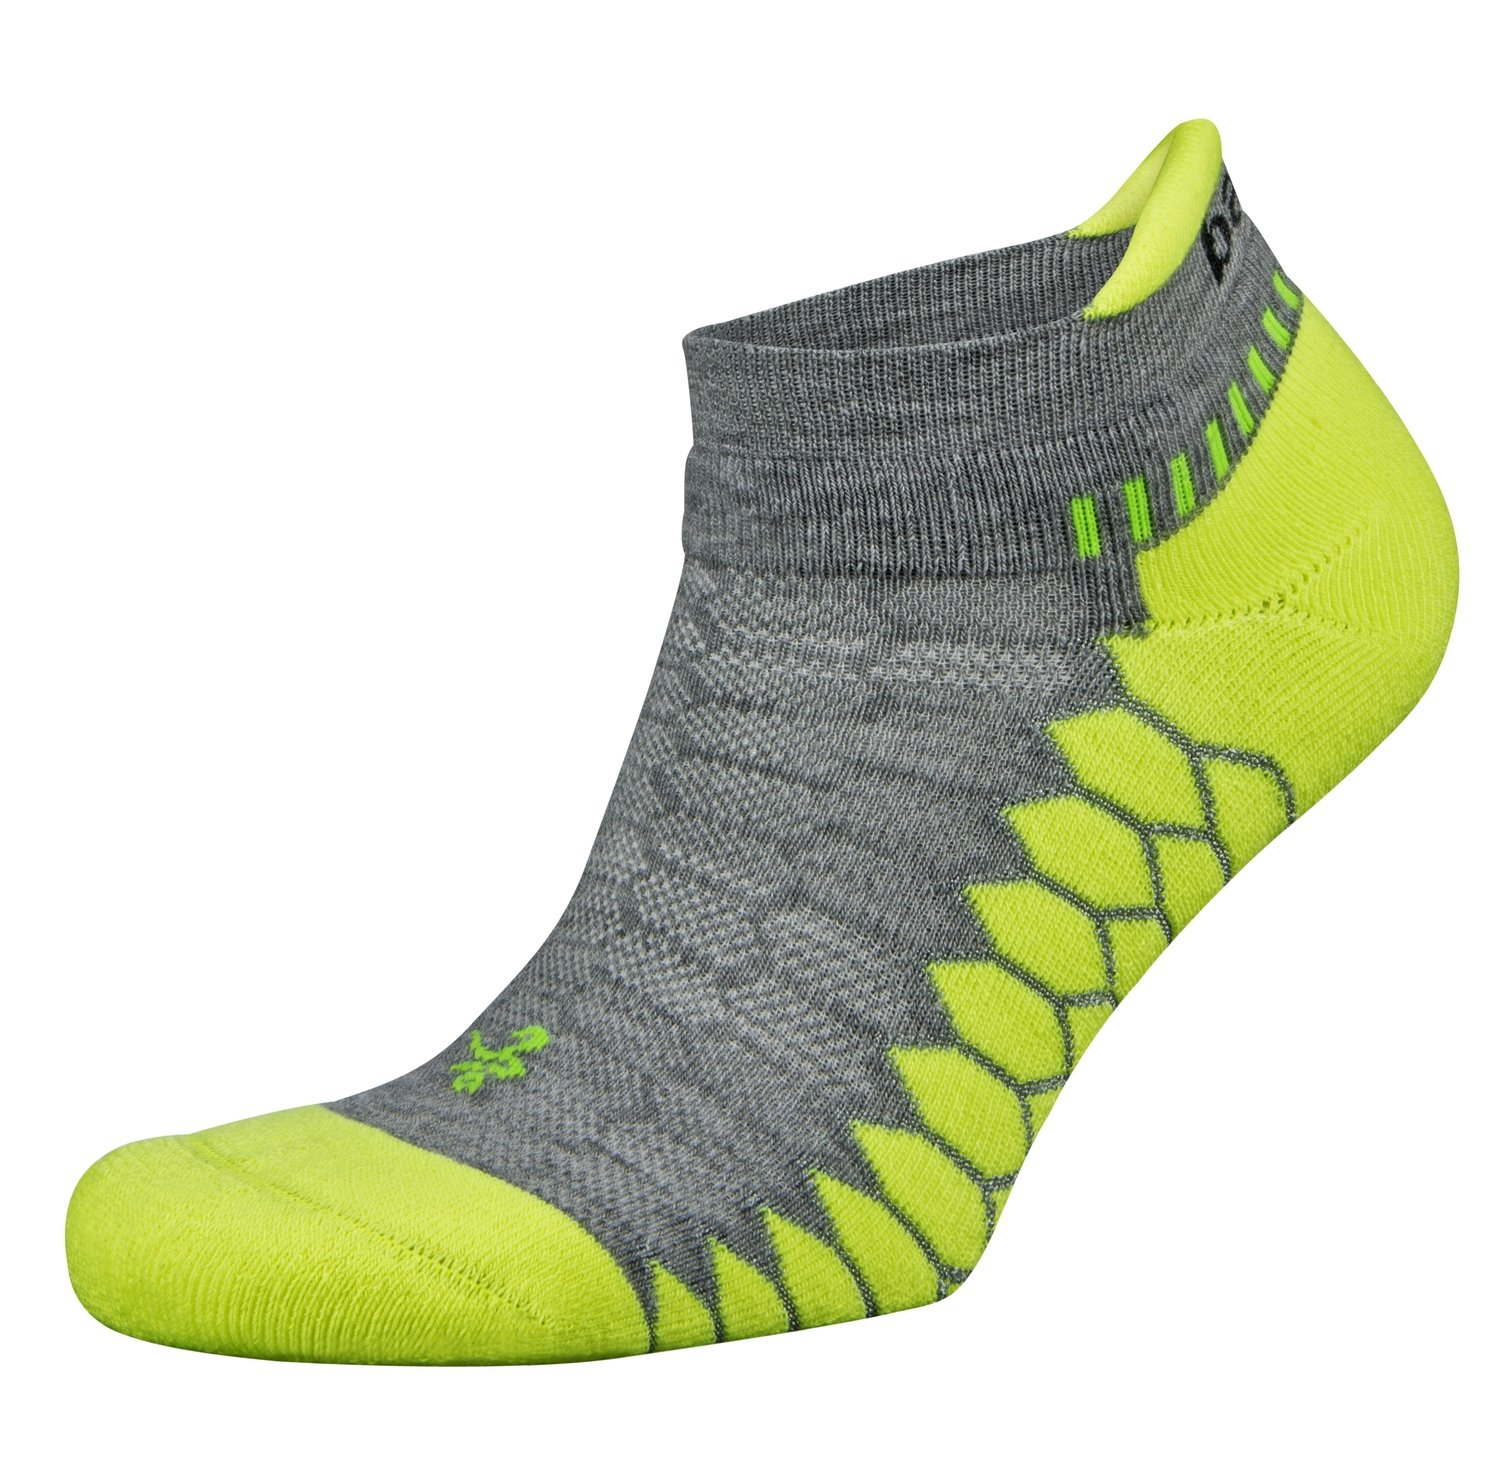 Silver Antimicrobial NoShow Compression Fit Running Socks Neon/Grey